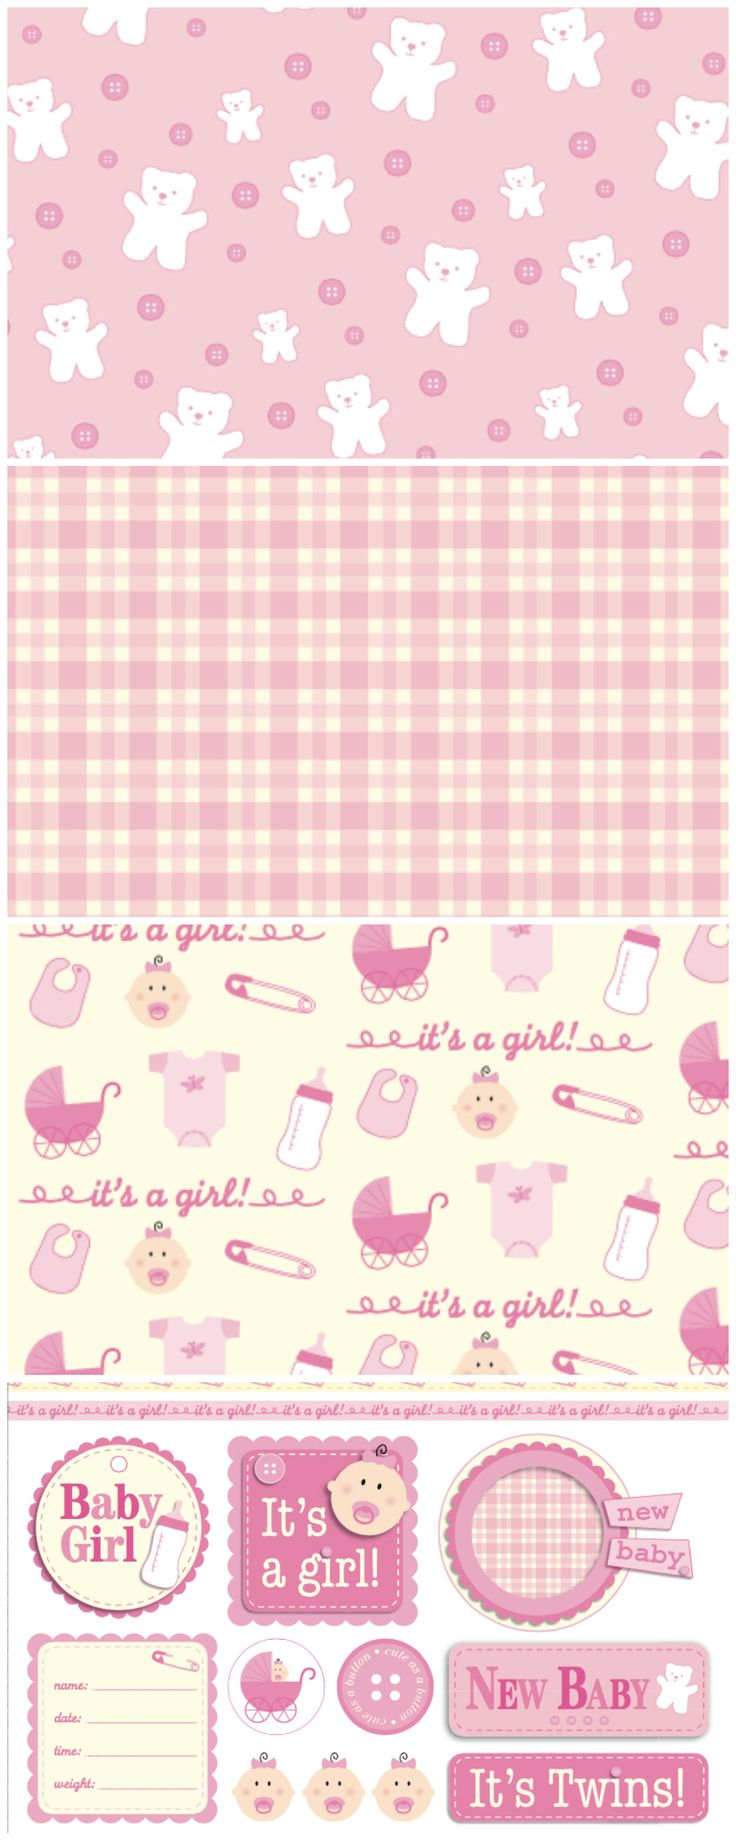 Use these pretty pink free digital papers to make a card or scrapbook for a new baby girl!